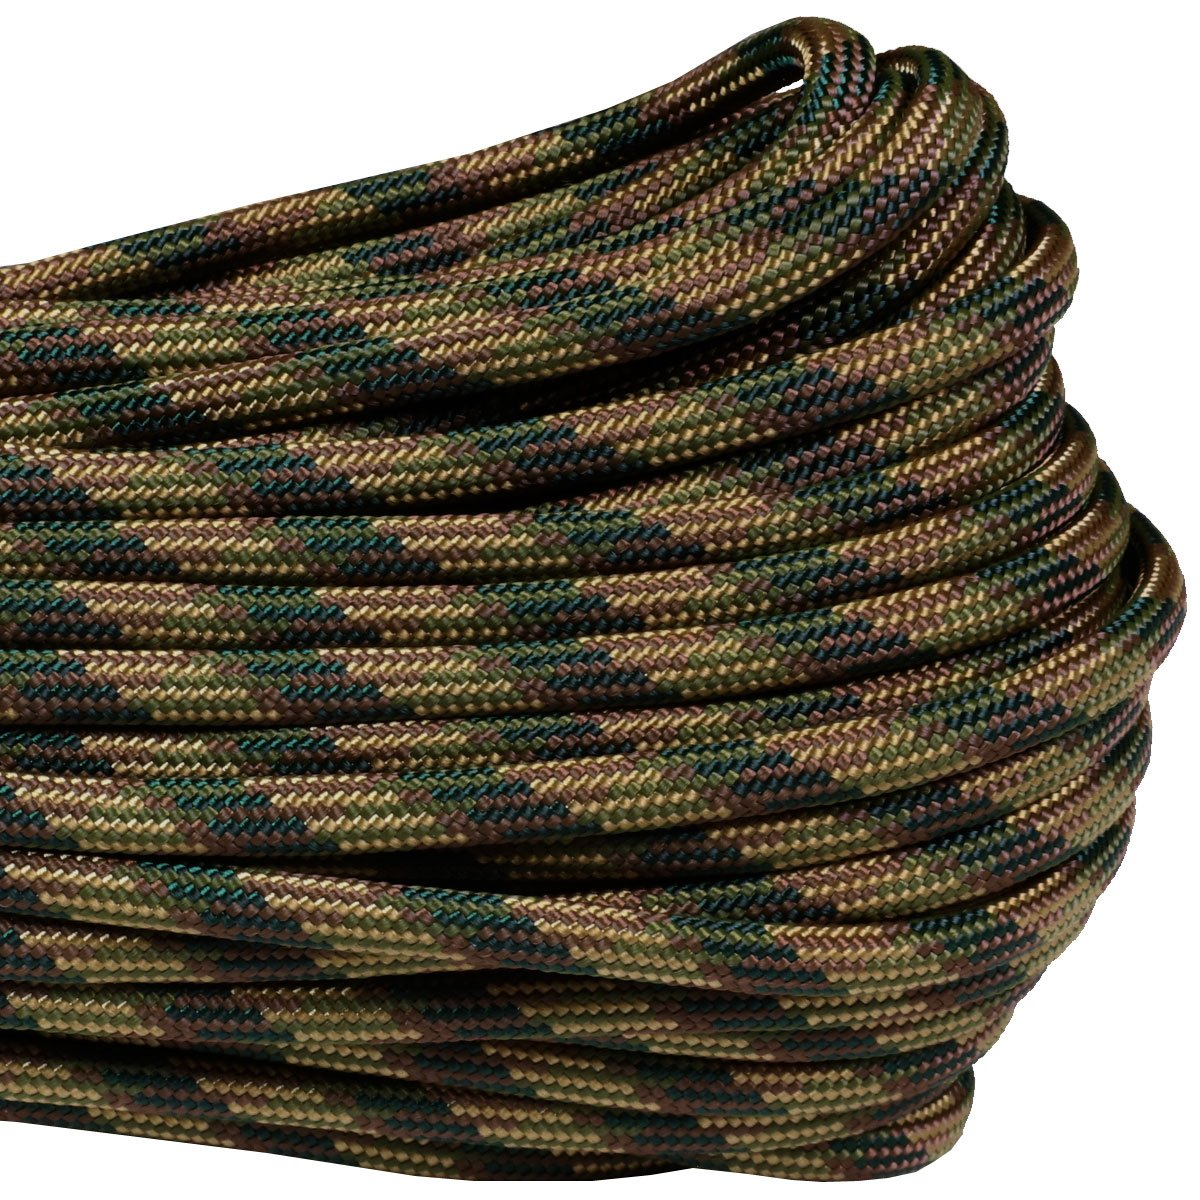 Atwood 550 Paracord - Recon